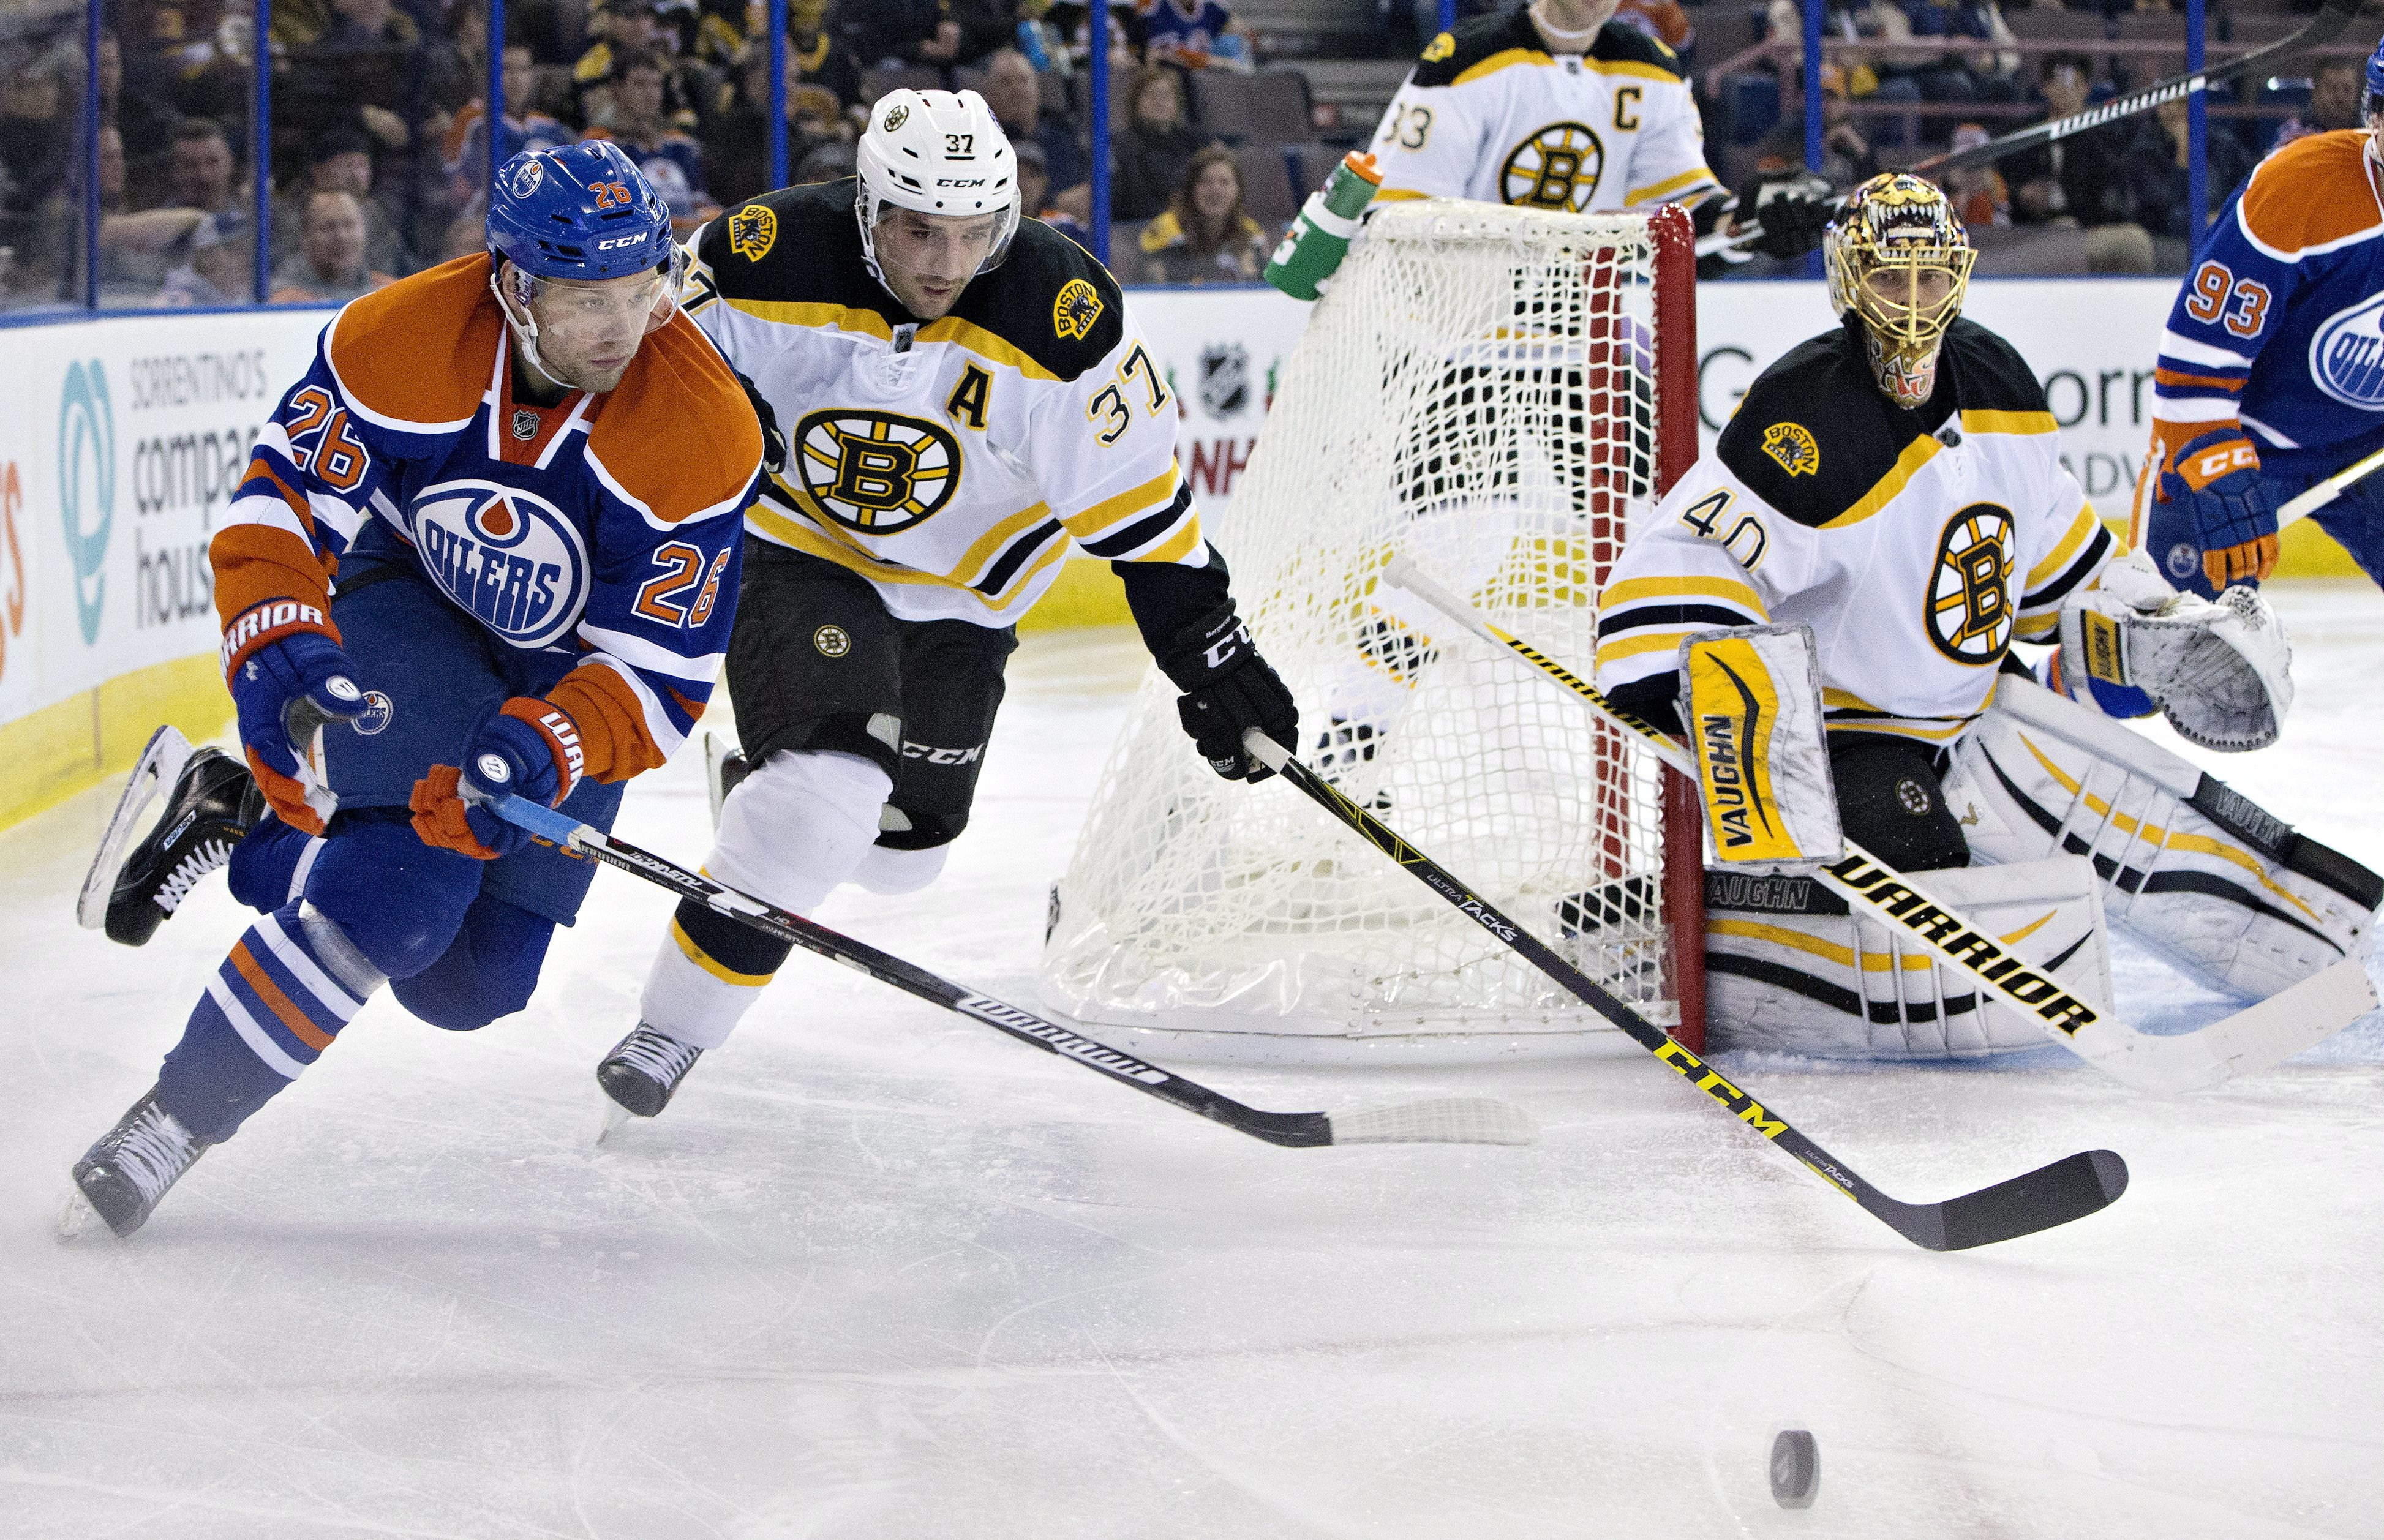 Boston Bruins' Patrice Bergeron (37) and Edmonton Oilers' Iiro Pakarinen (26) chase the rebound from goalie Tuukka Rask (40) during the second period of an NHL hockey game, Wednesday, Dec. 2, 2015, in Edmonton, Alberta. (Jason Franson/The Canadian Press v